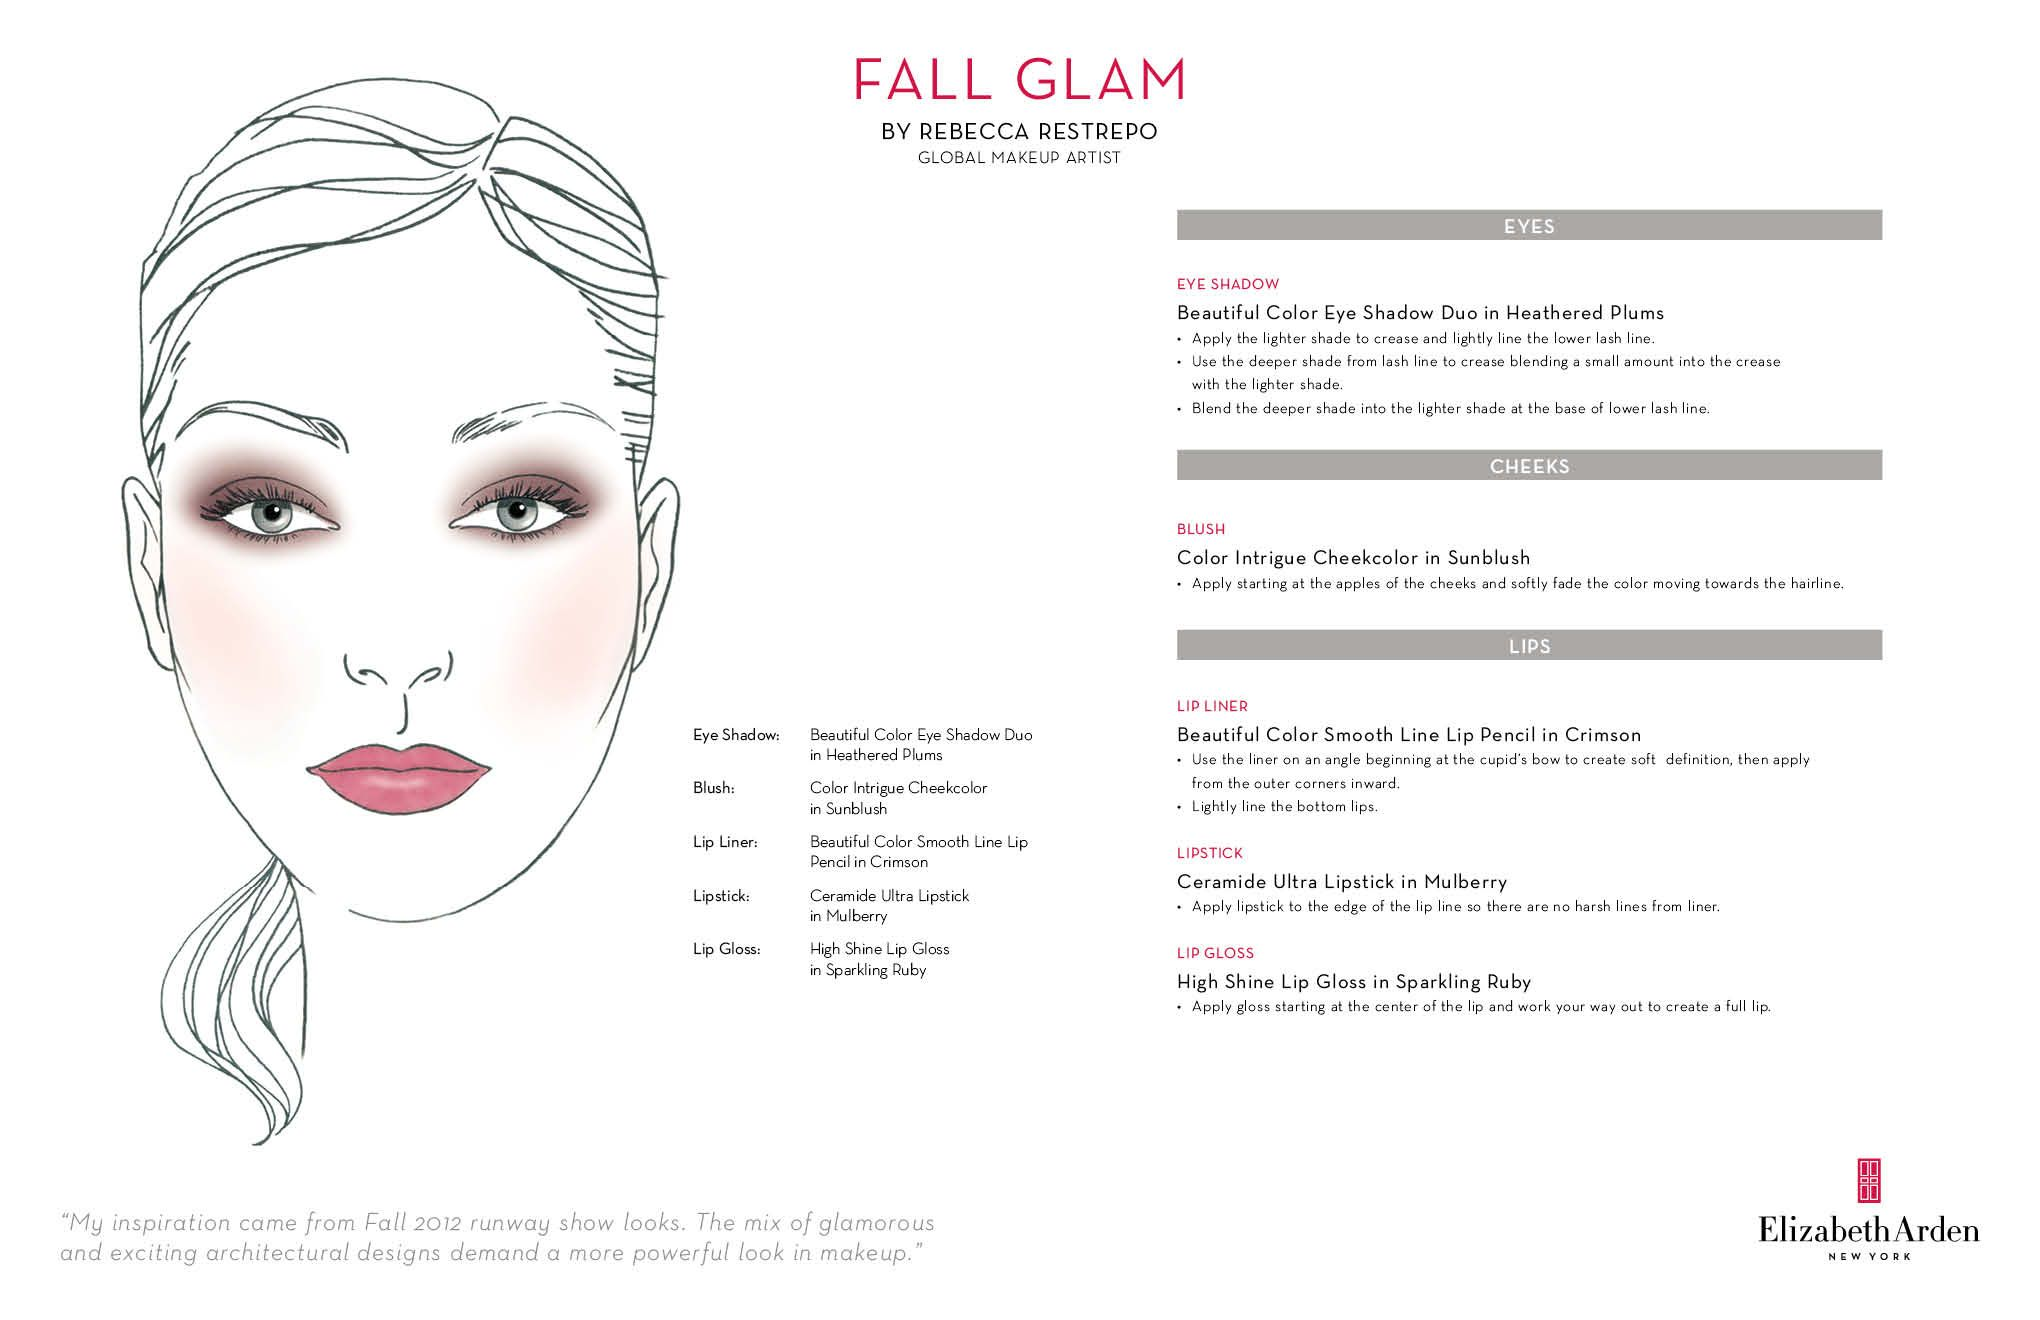 Elizabeth Arden's Fall Glam Face Chart Face chart